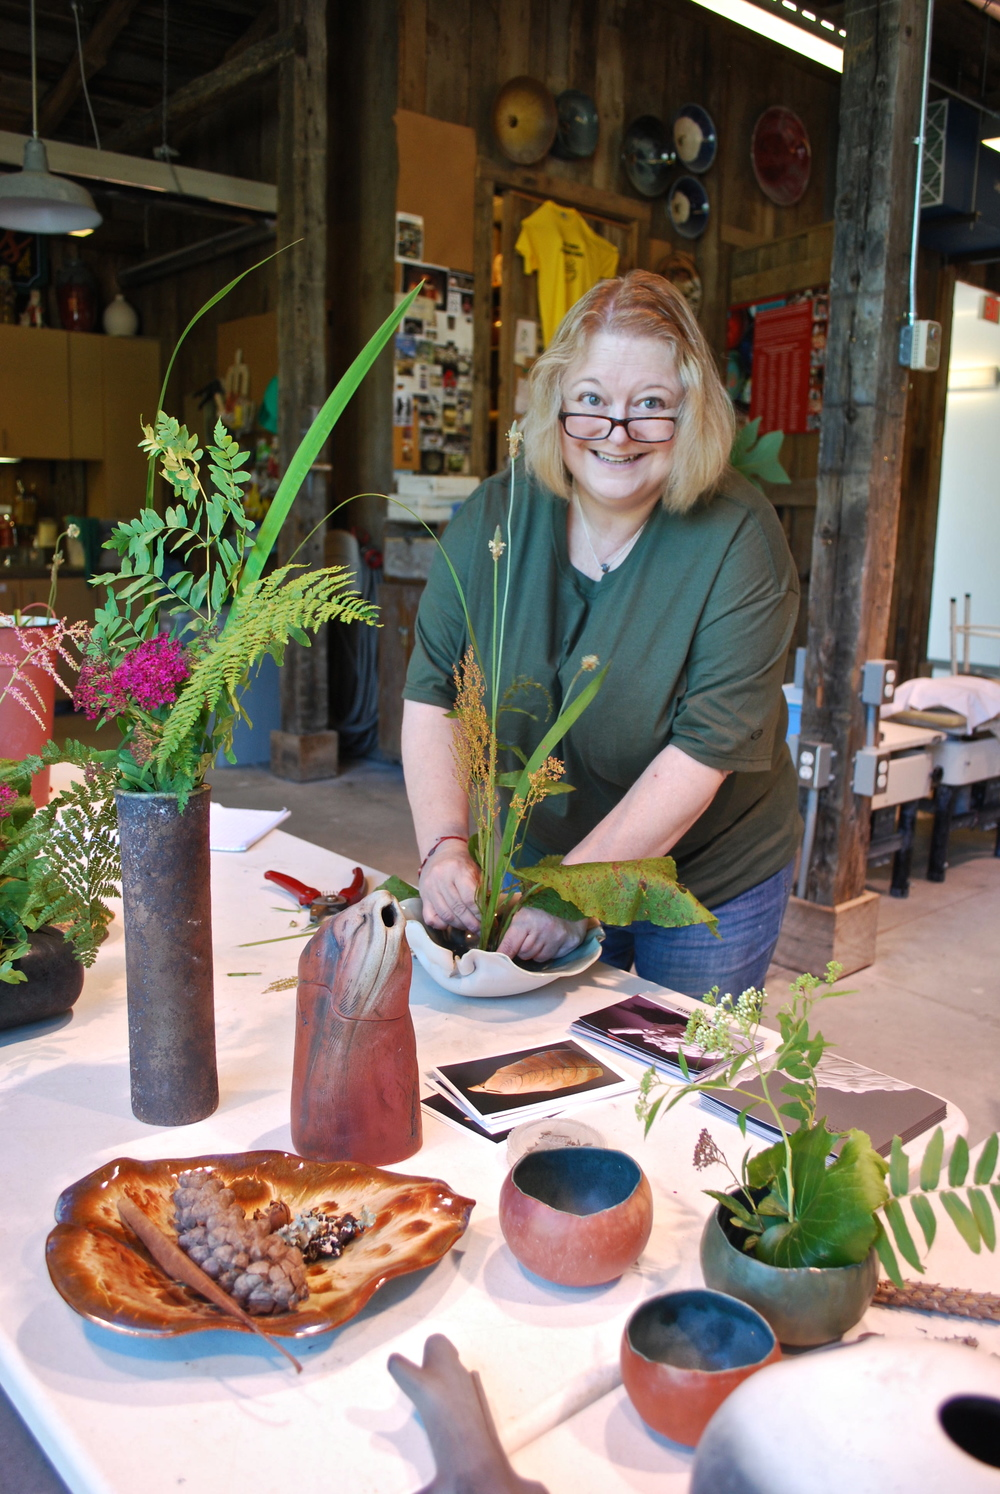 Ralph's demo plus his explanation of the major points of the philosophy and history behind the art of Ikebana proved to be inspirational as we tried our hand with available plant materials...